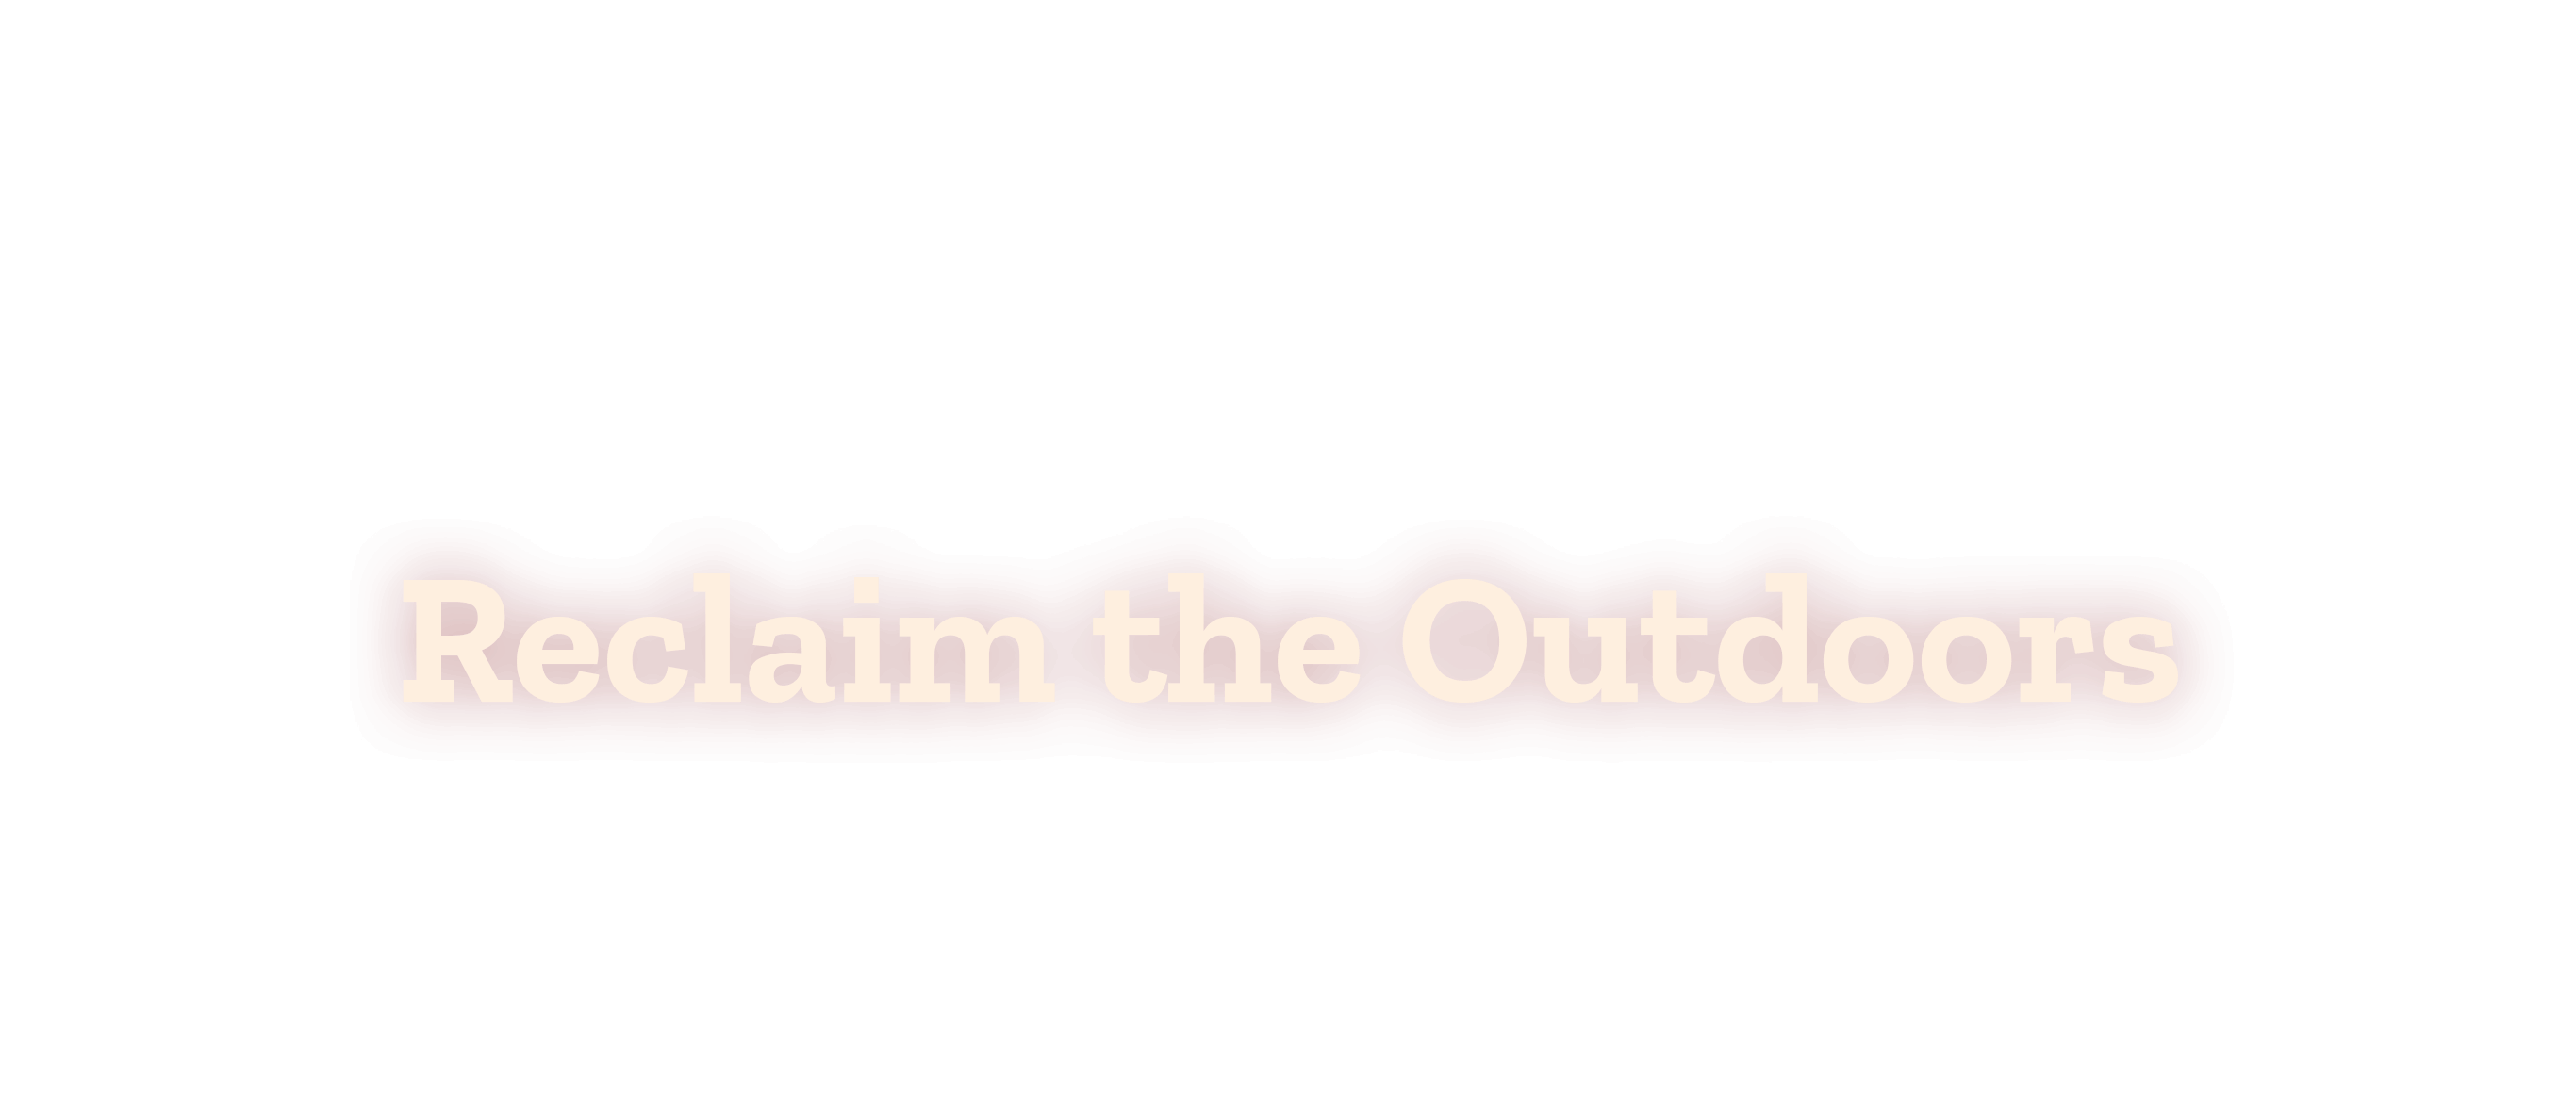 Reclaim the Outdoors